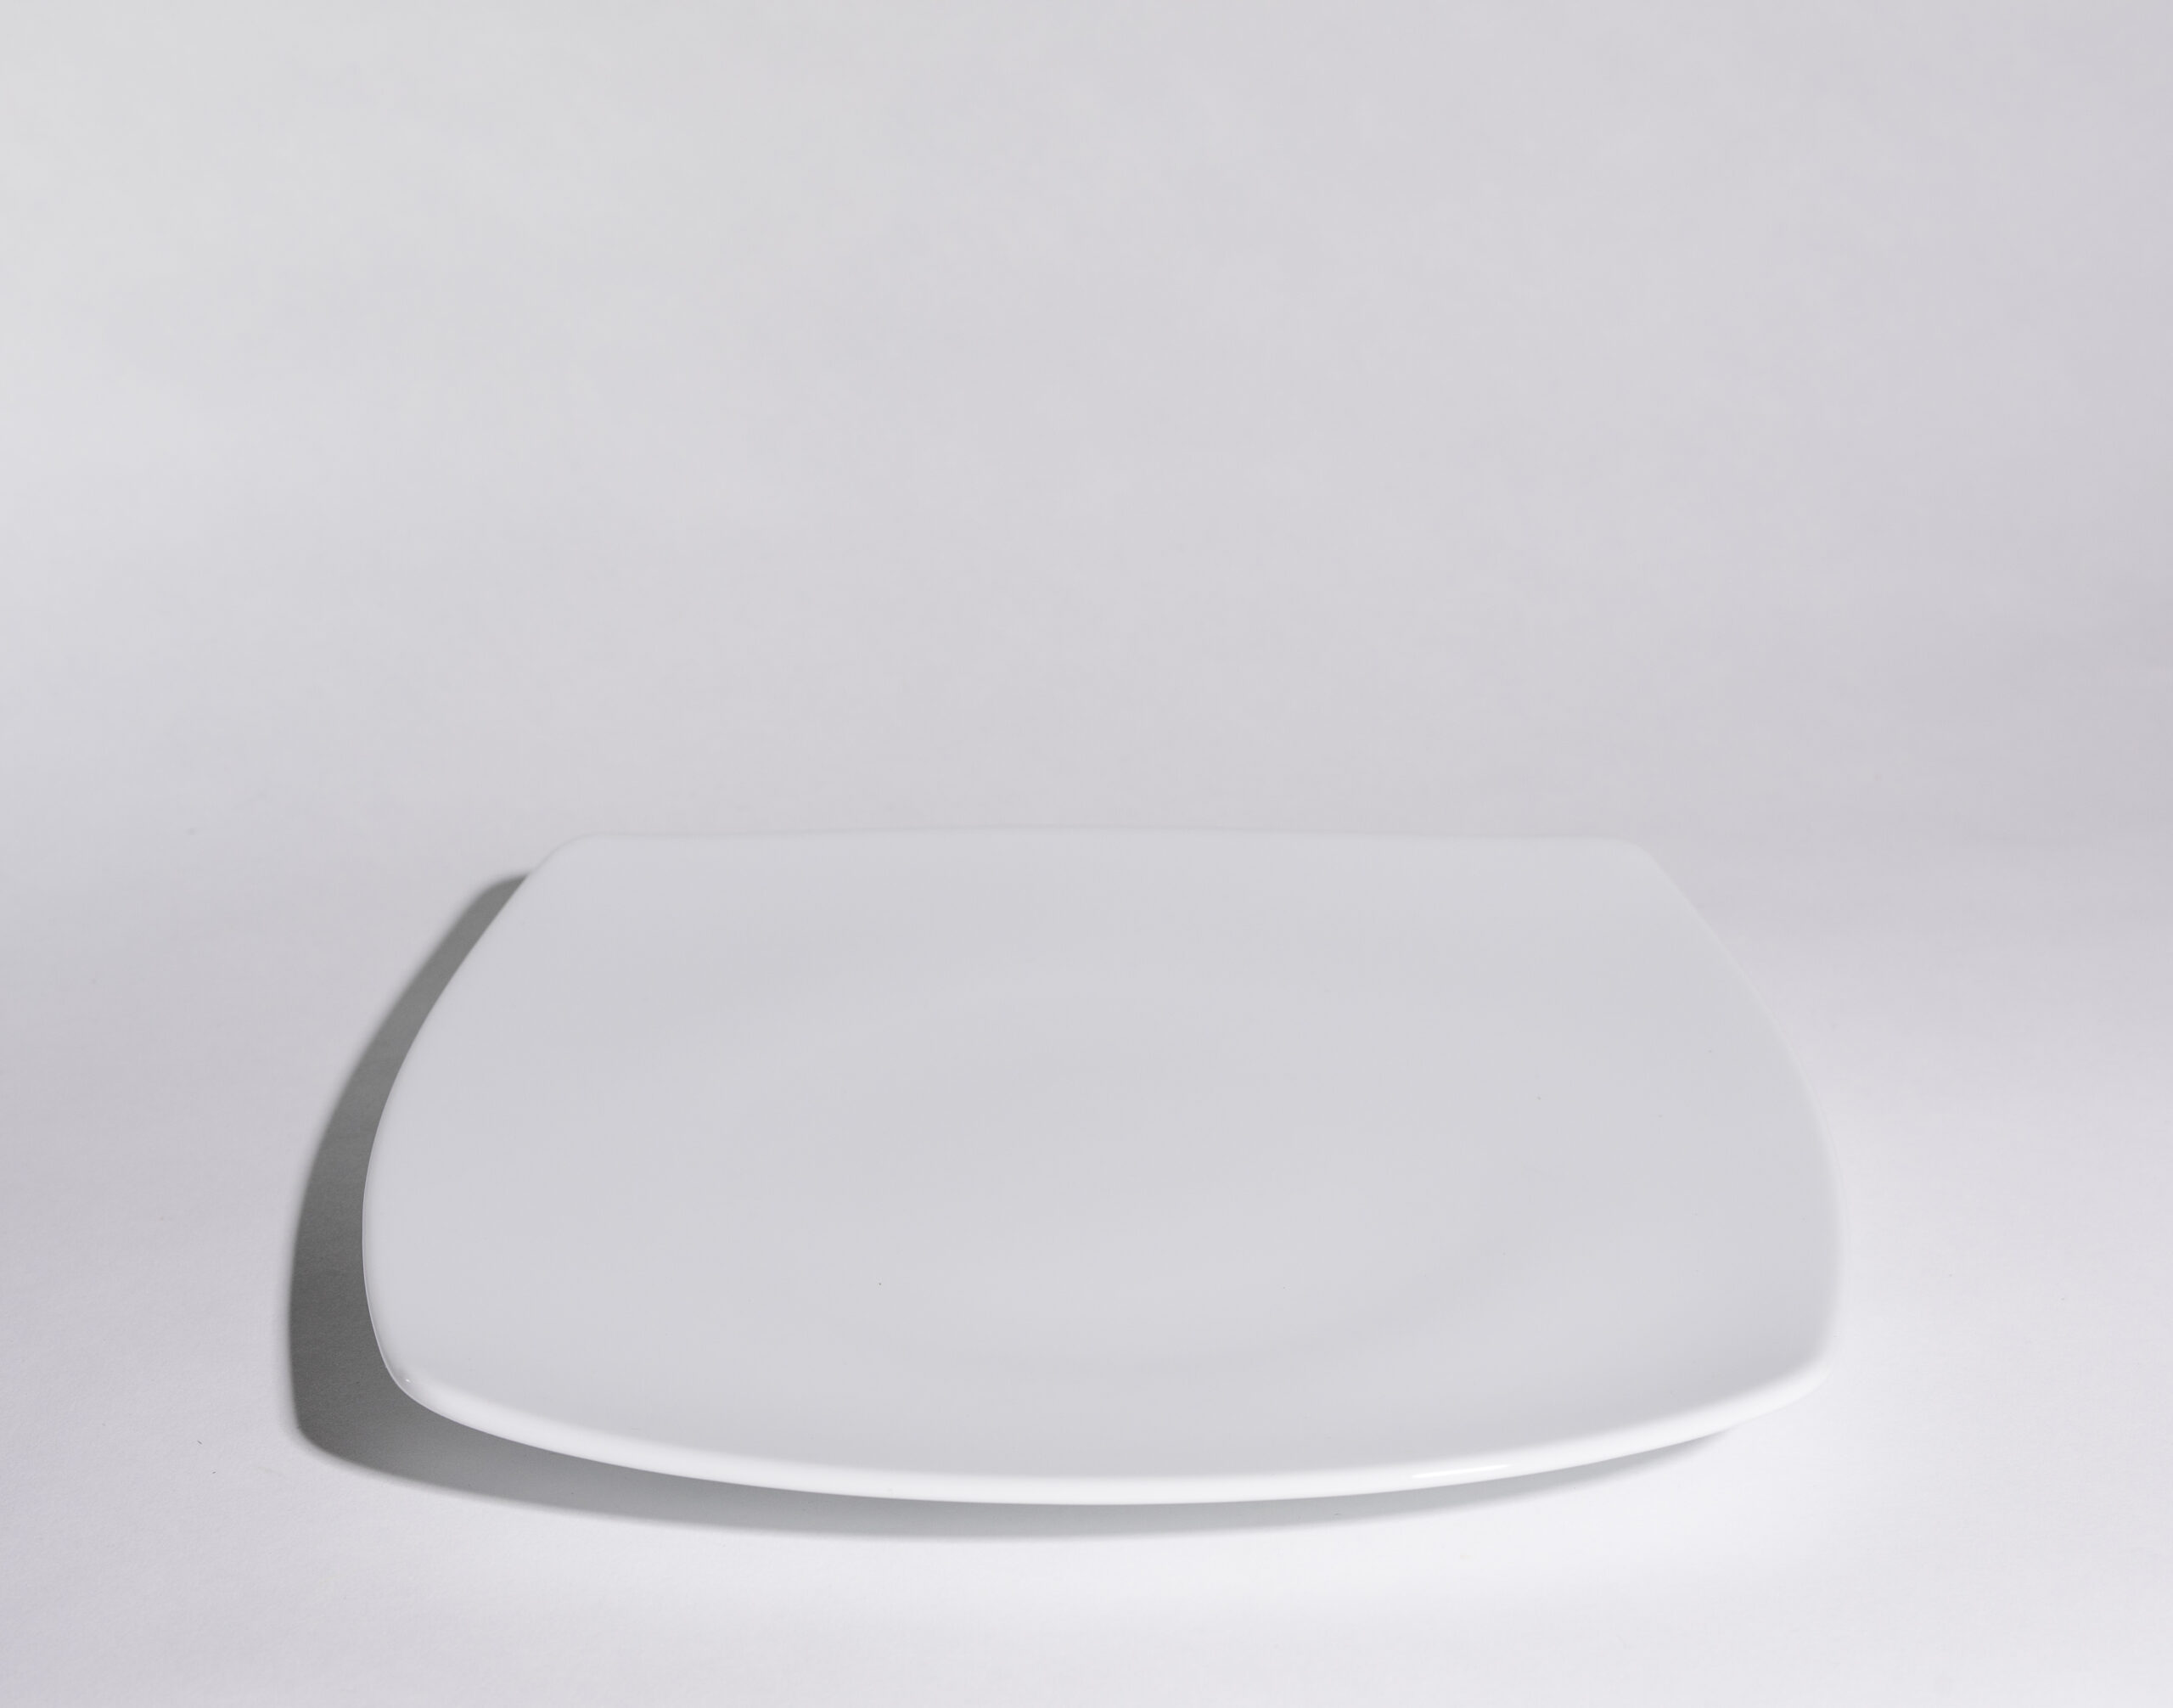 Lunch plates (10'')